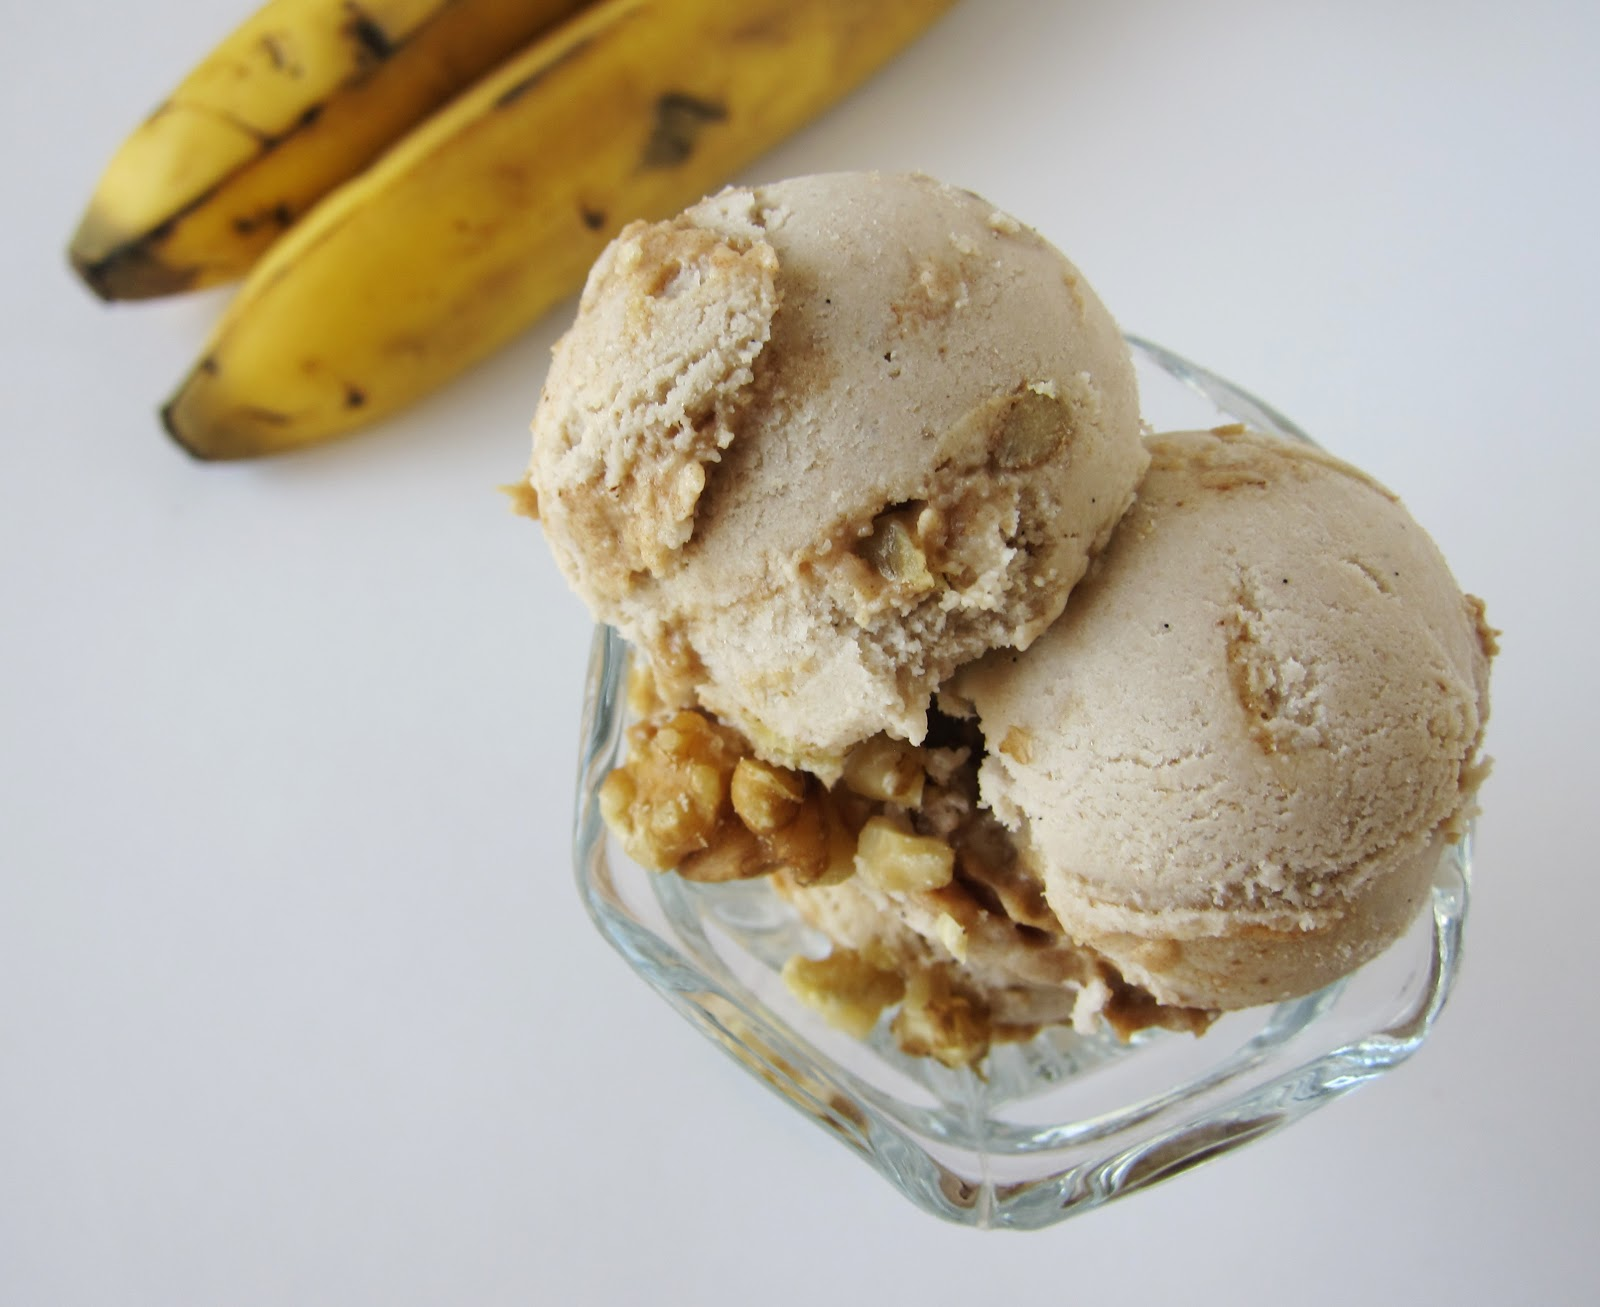 Raw Banana Caramel Walnut Ice Cream